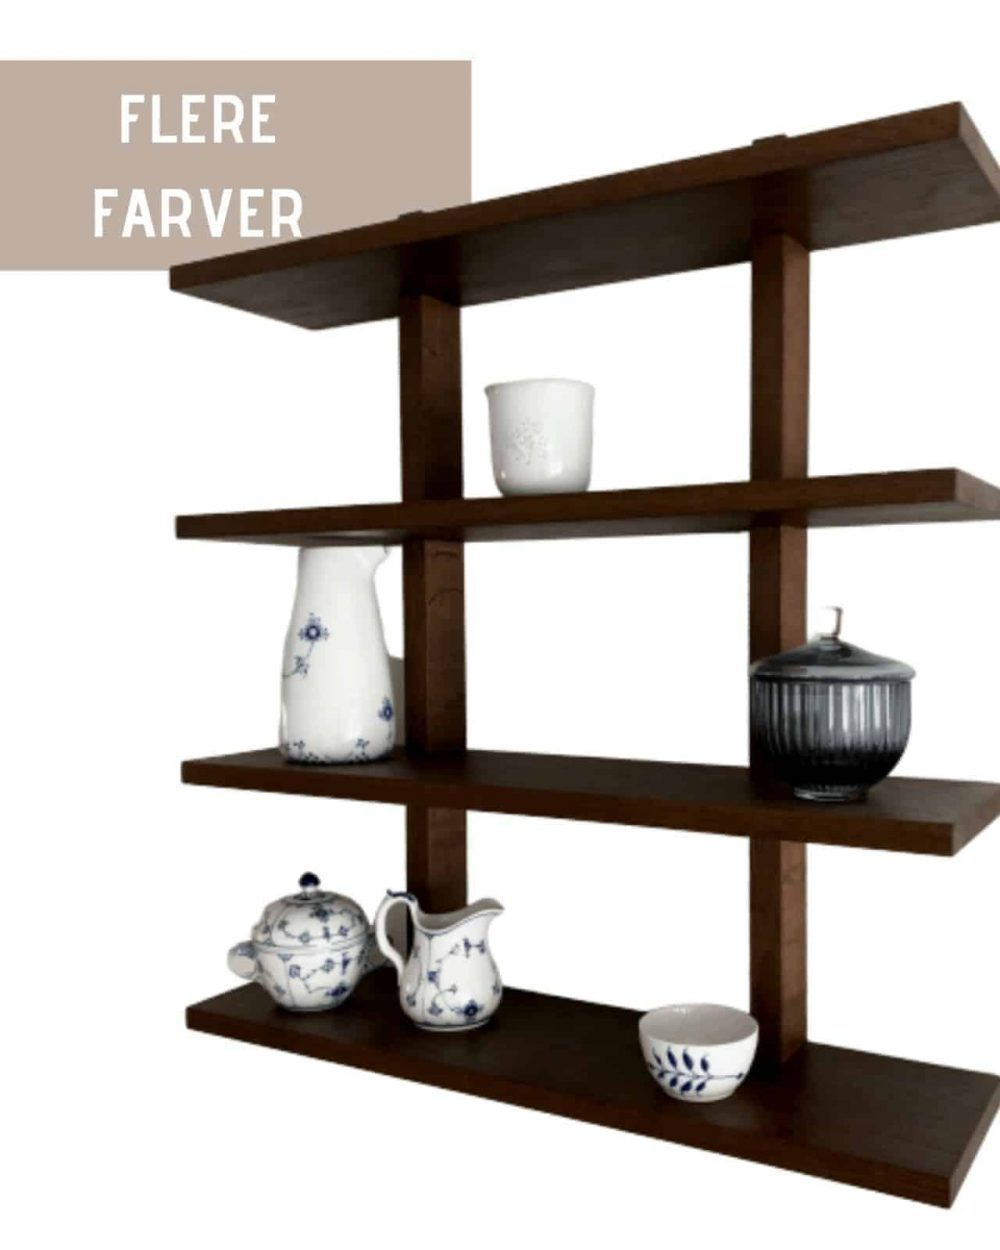 shelving system 2020 more colors